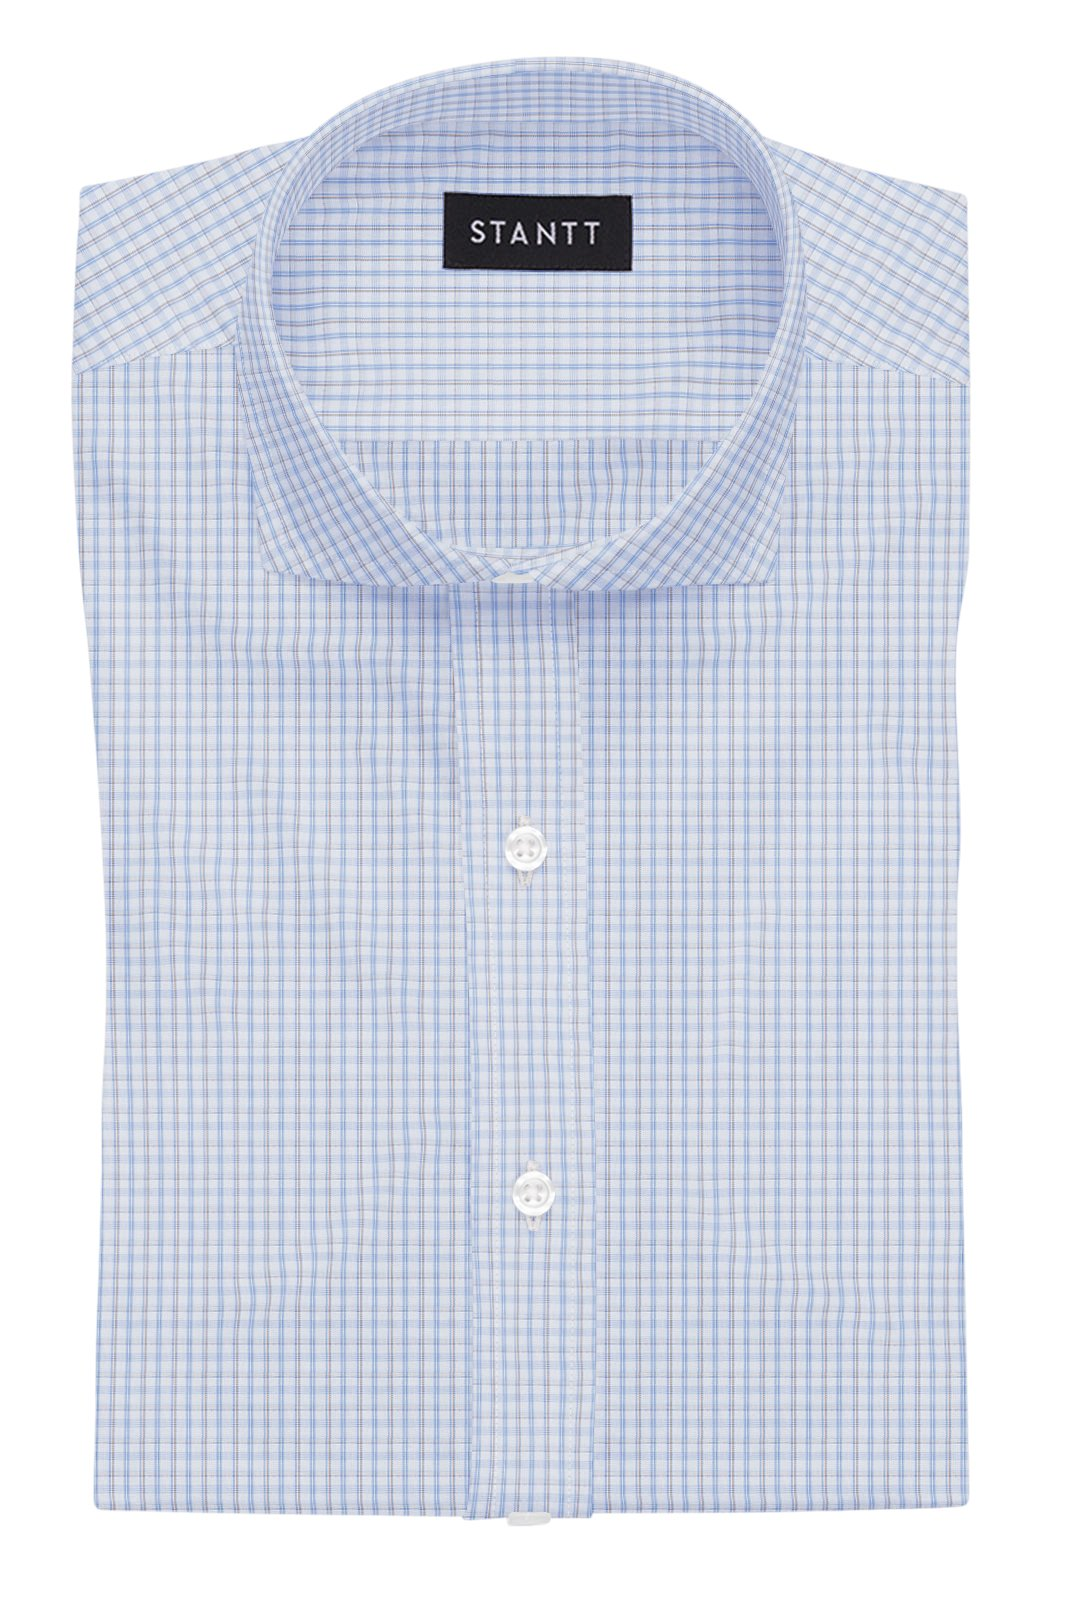 Wrinkle-Resistant Light Blue and Brown Bordered Tattersall: Cutaway Collar, French Cuff